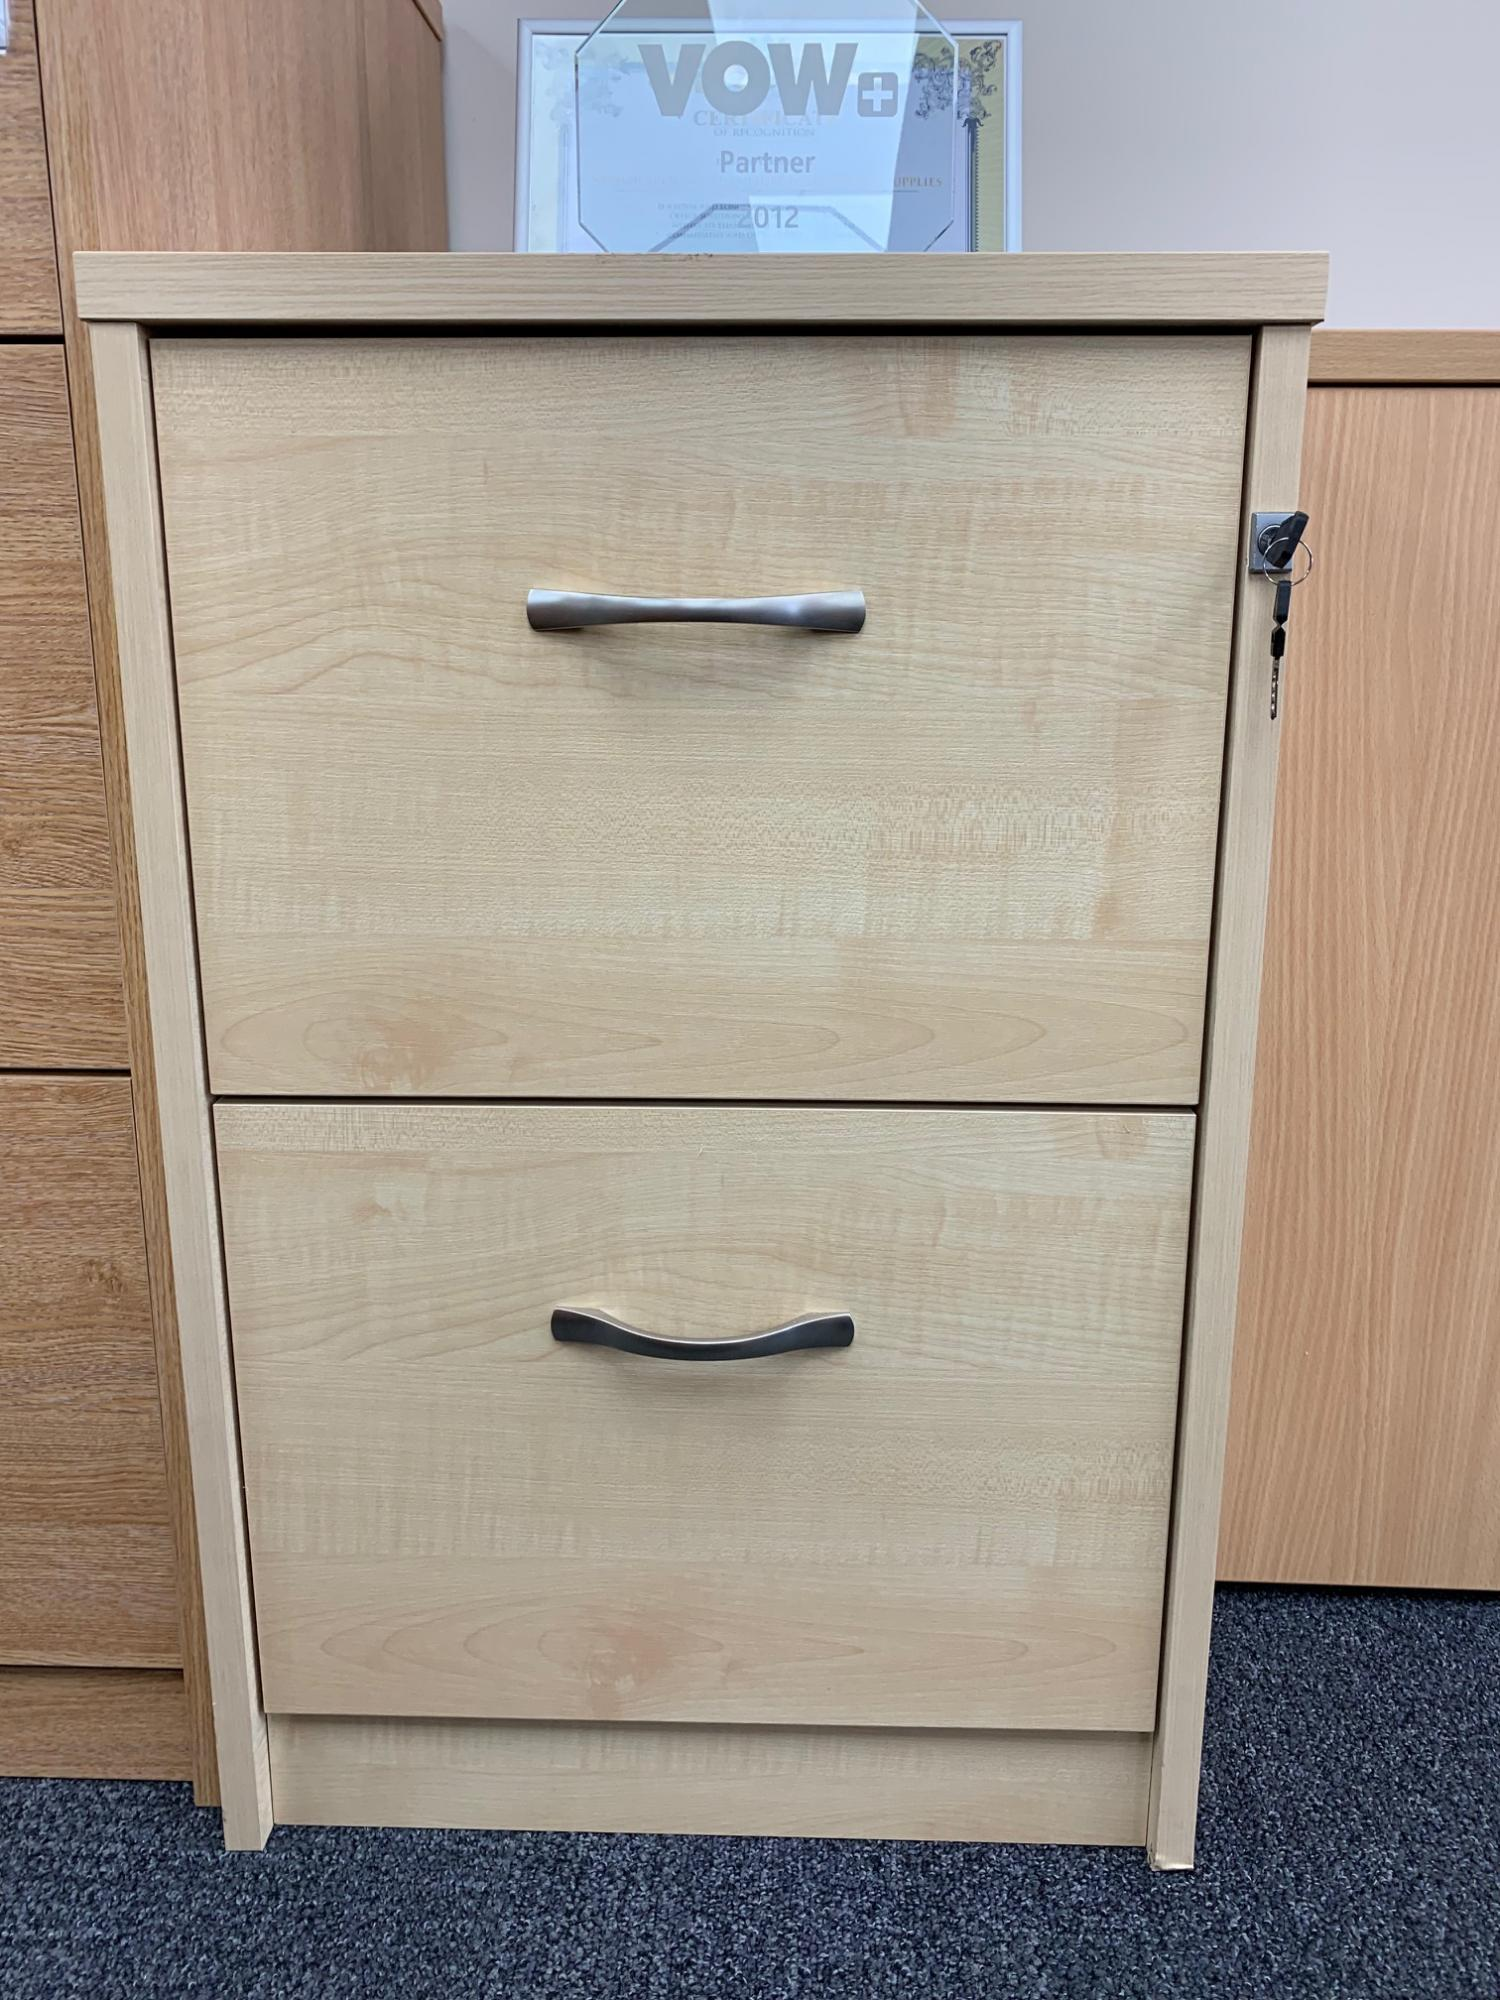 Secondhand Filing Cabinets